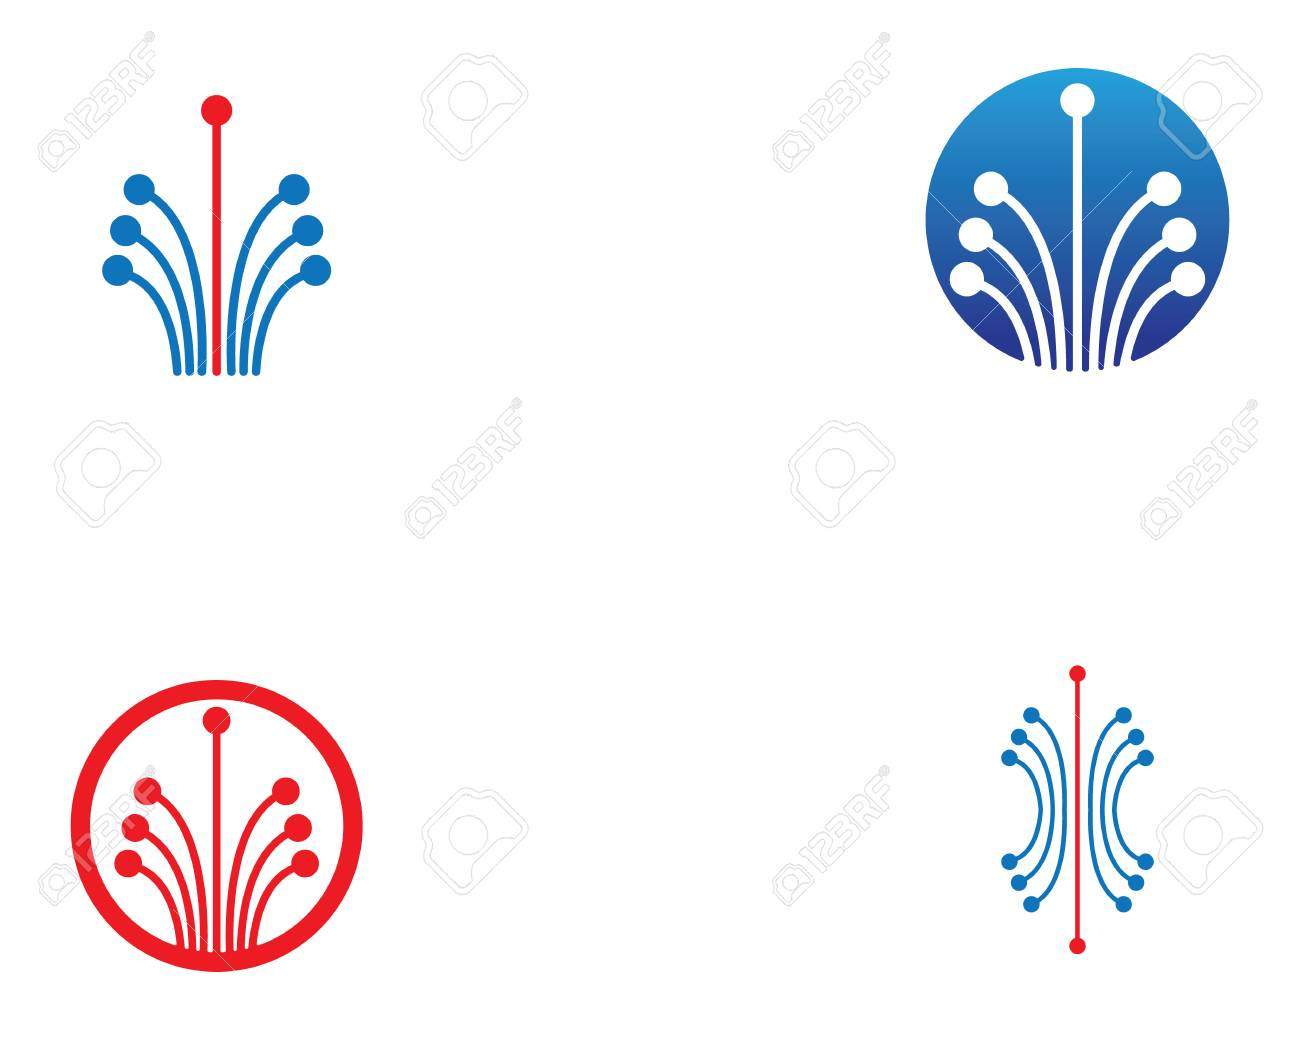 Internet Cable Logo And Symbols Royalty Free Cliparts Vectors And